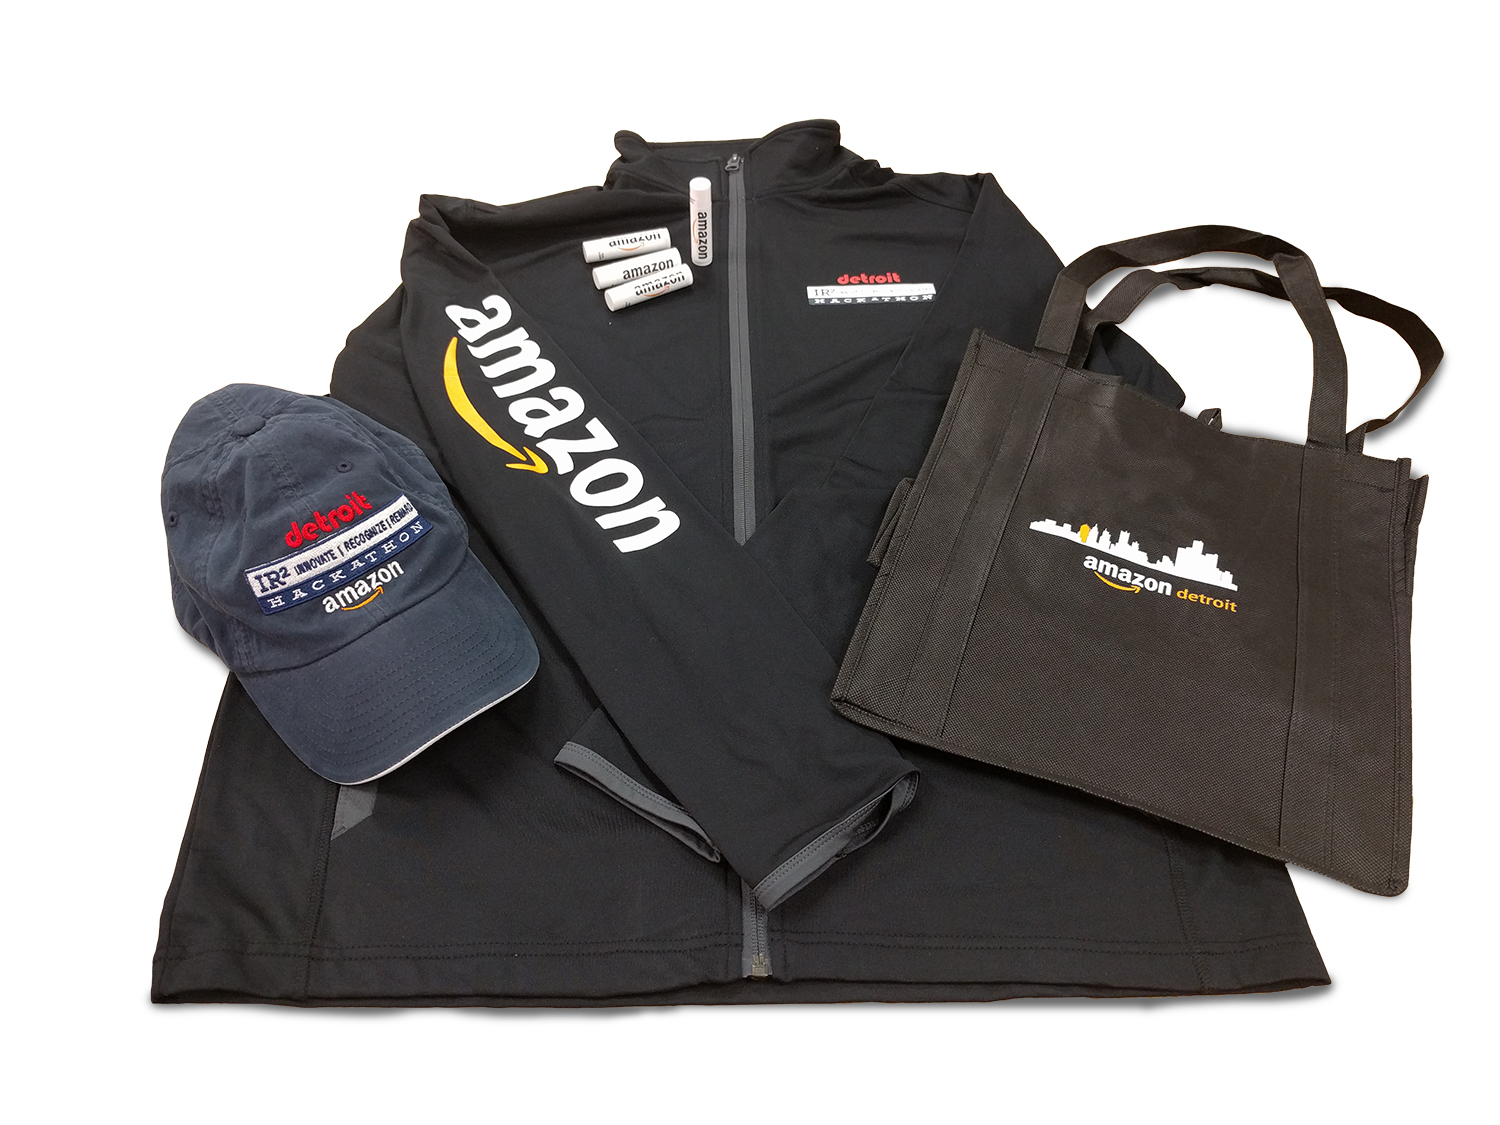 Amazon Hackathon Promotional Items